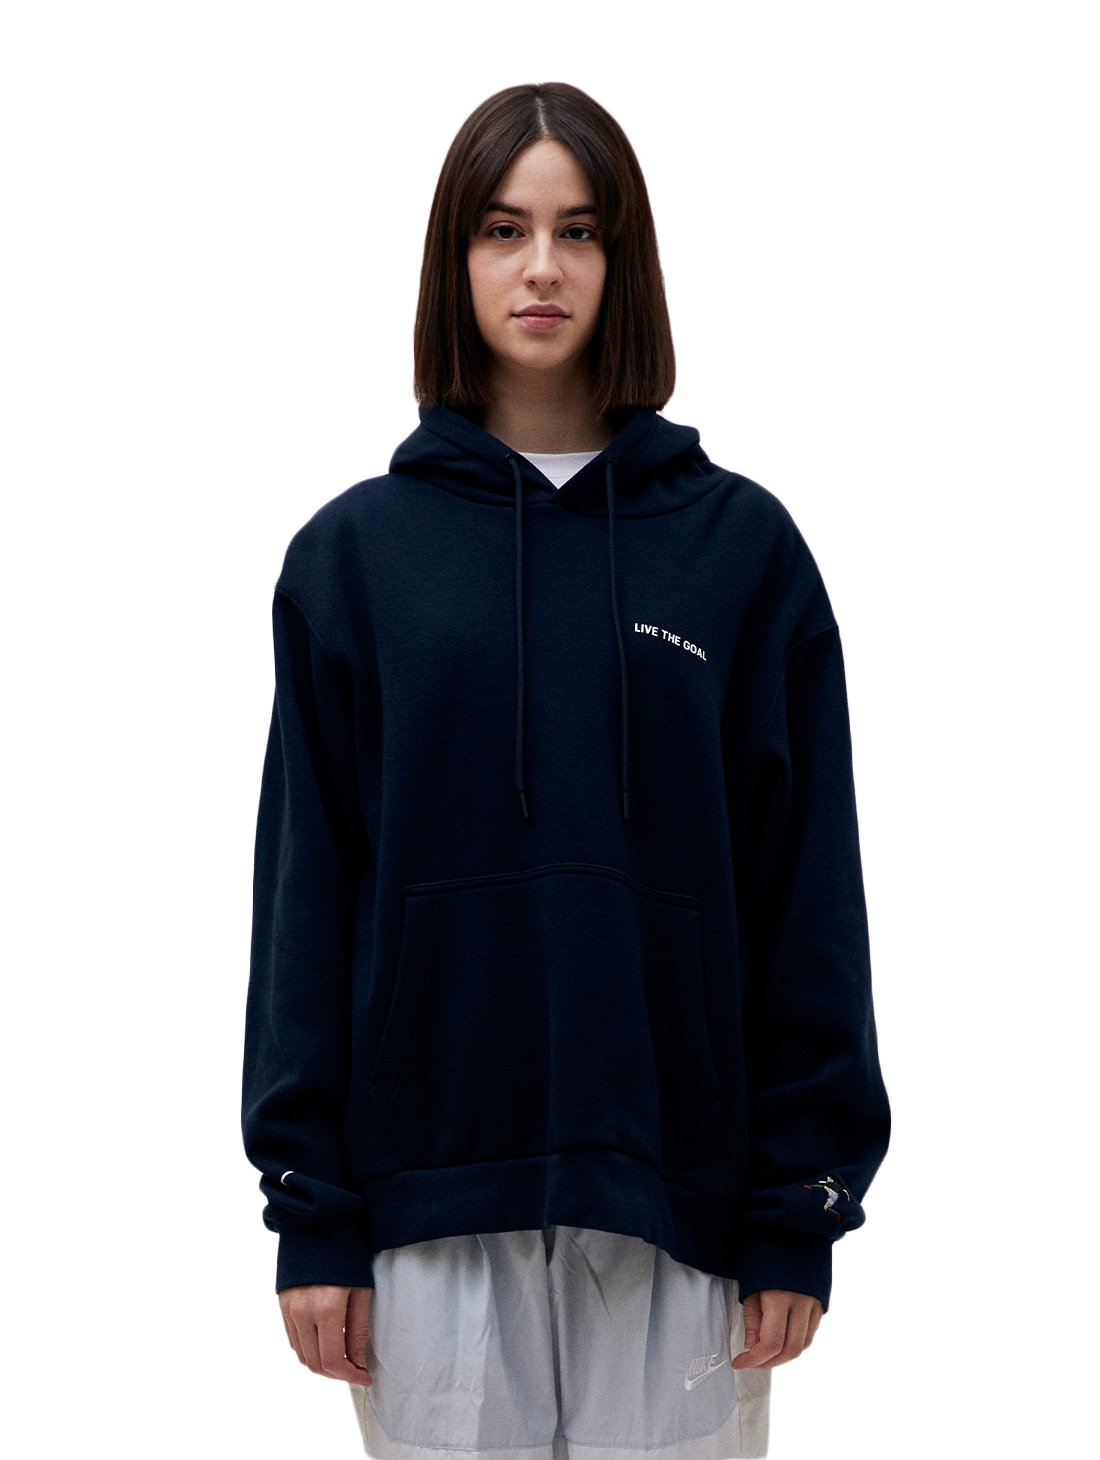 GOALSTUDIO LIVE THE GOAL HOODIE - NAVY